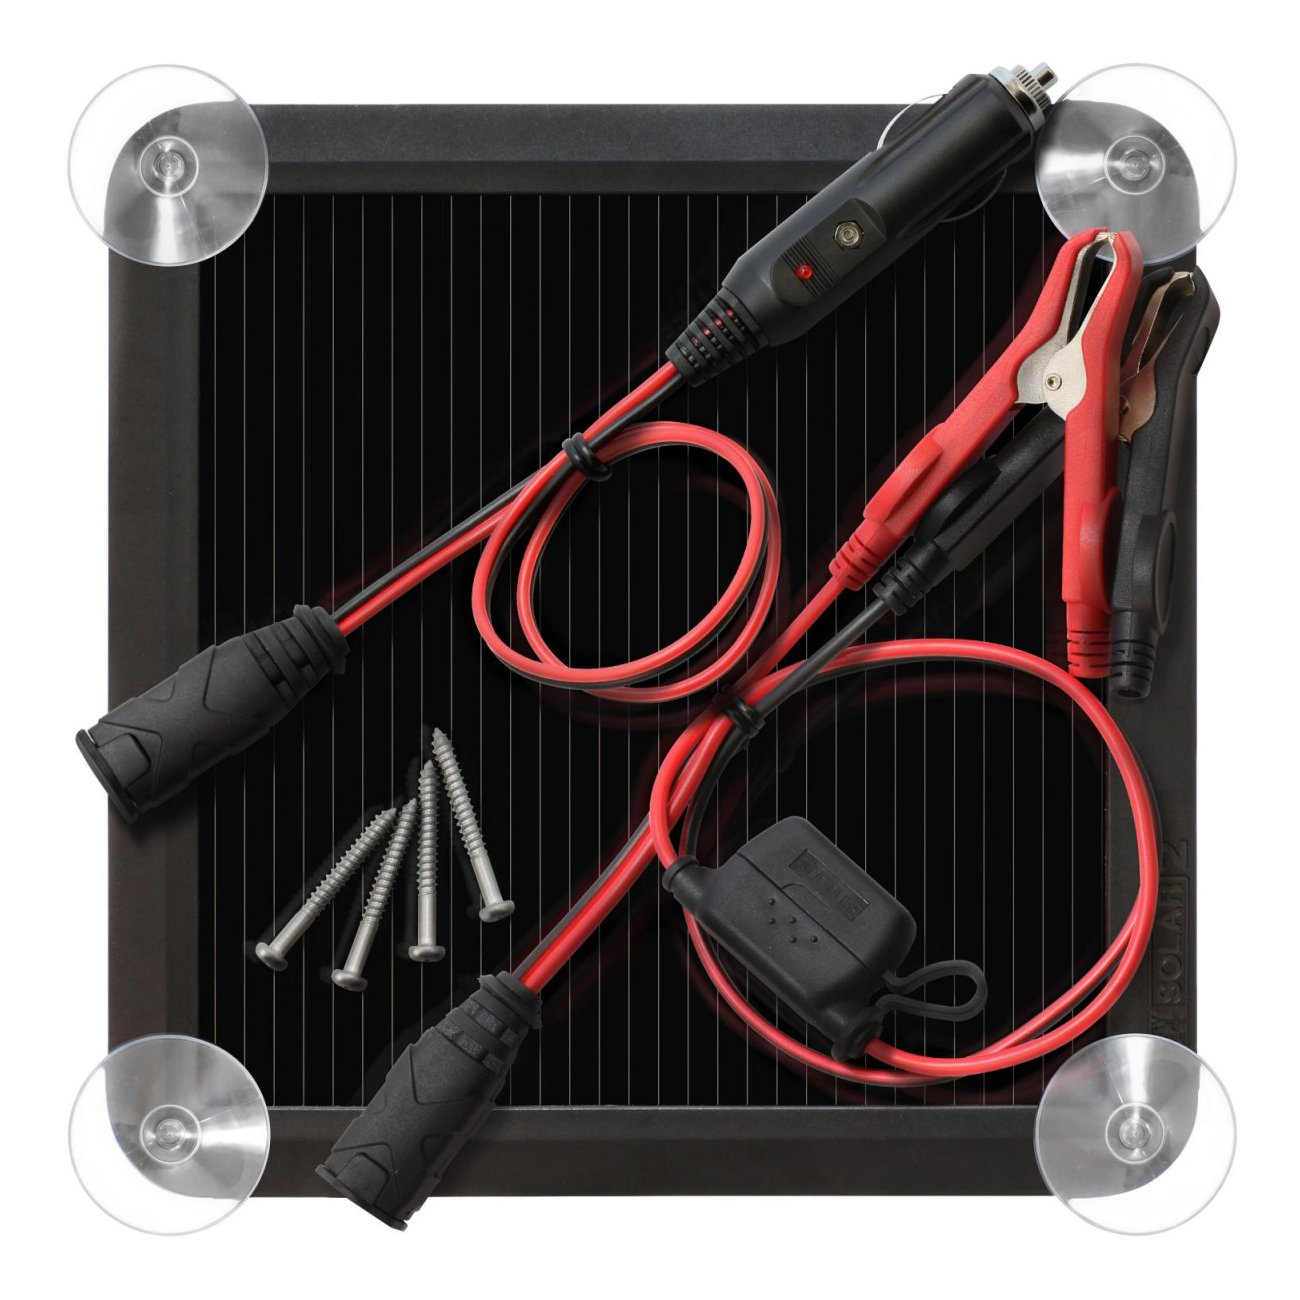 Noco Blsolar2 12v Solar Battery Charger Mart 48v Circuit With High Low Cutoff